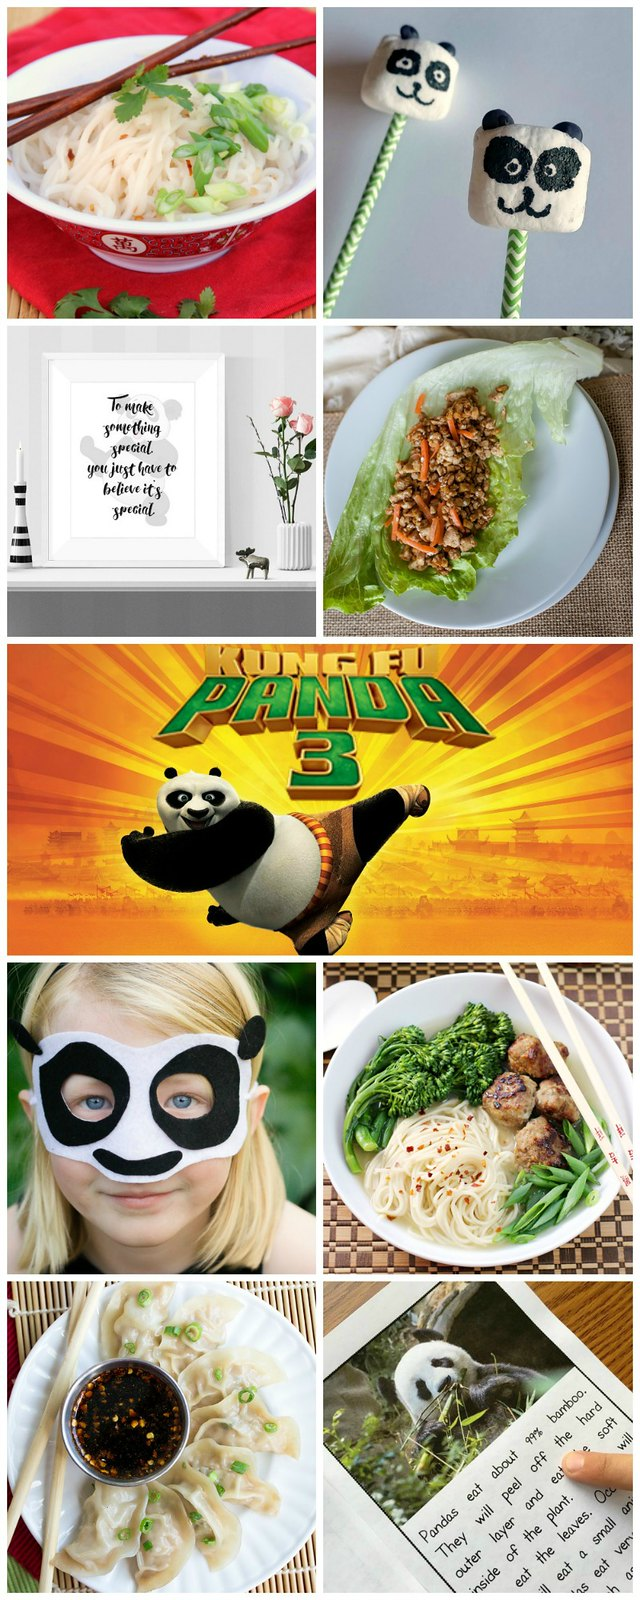 Kung Fu Panda 3 collage.